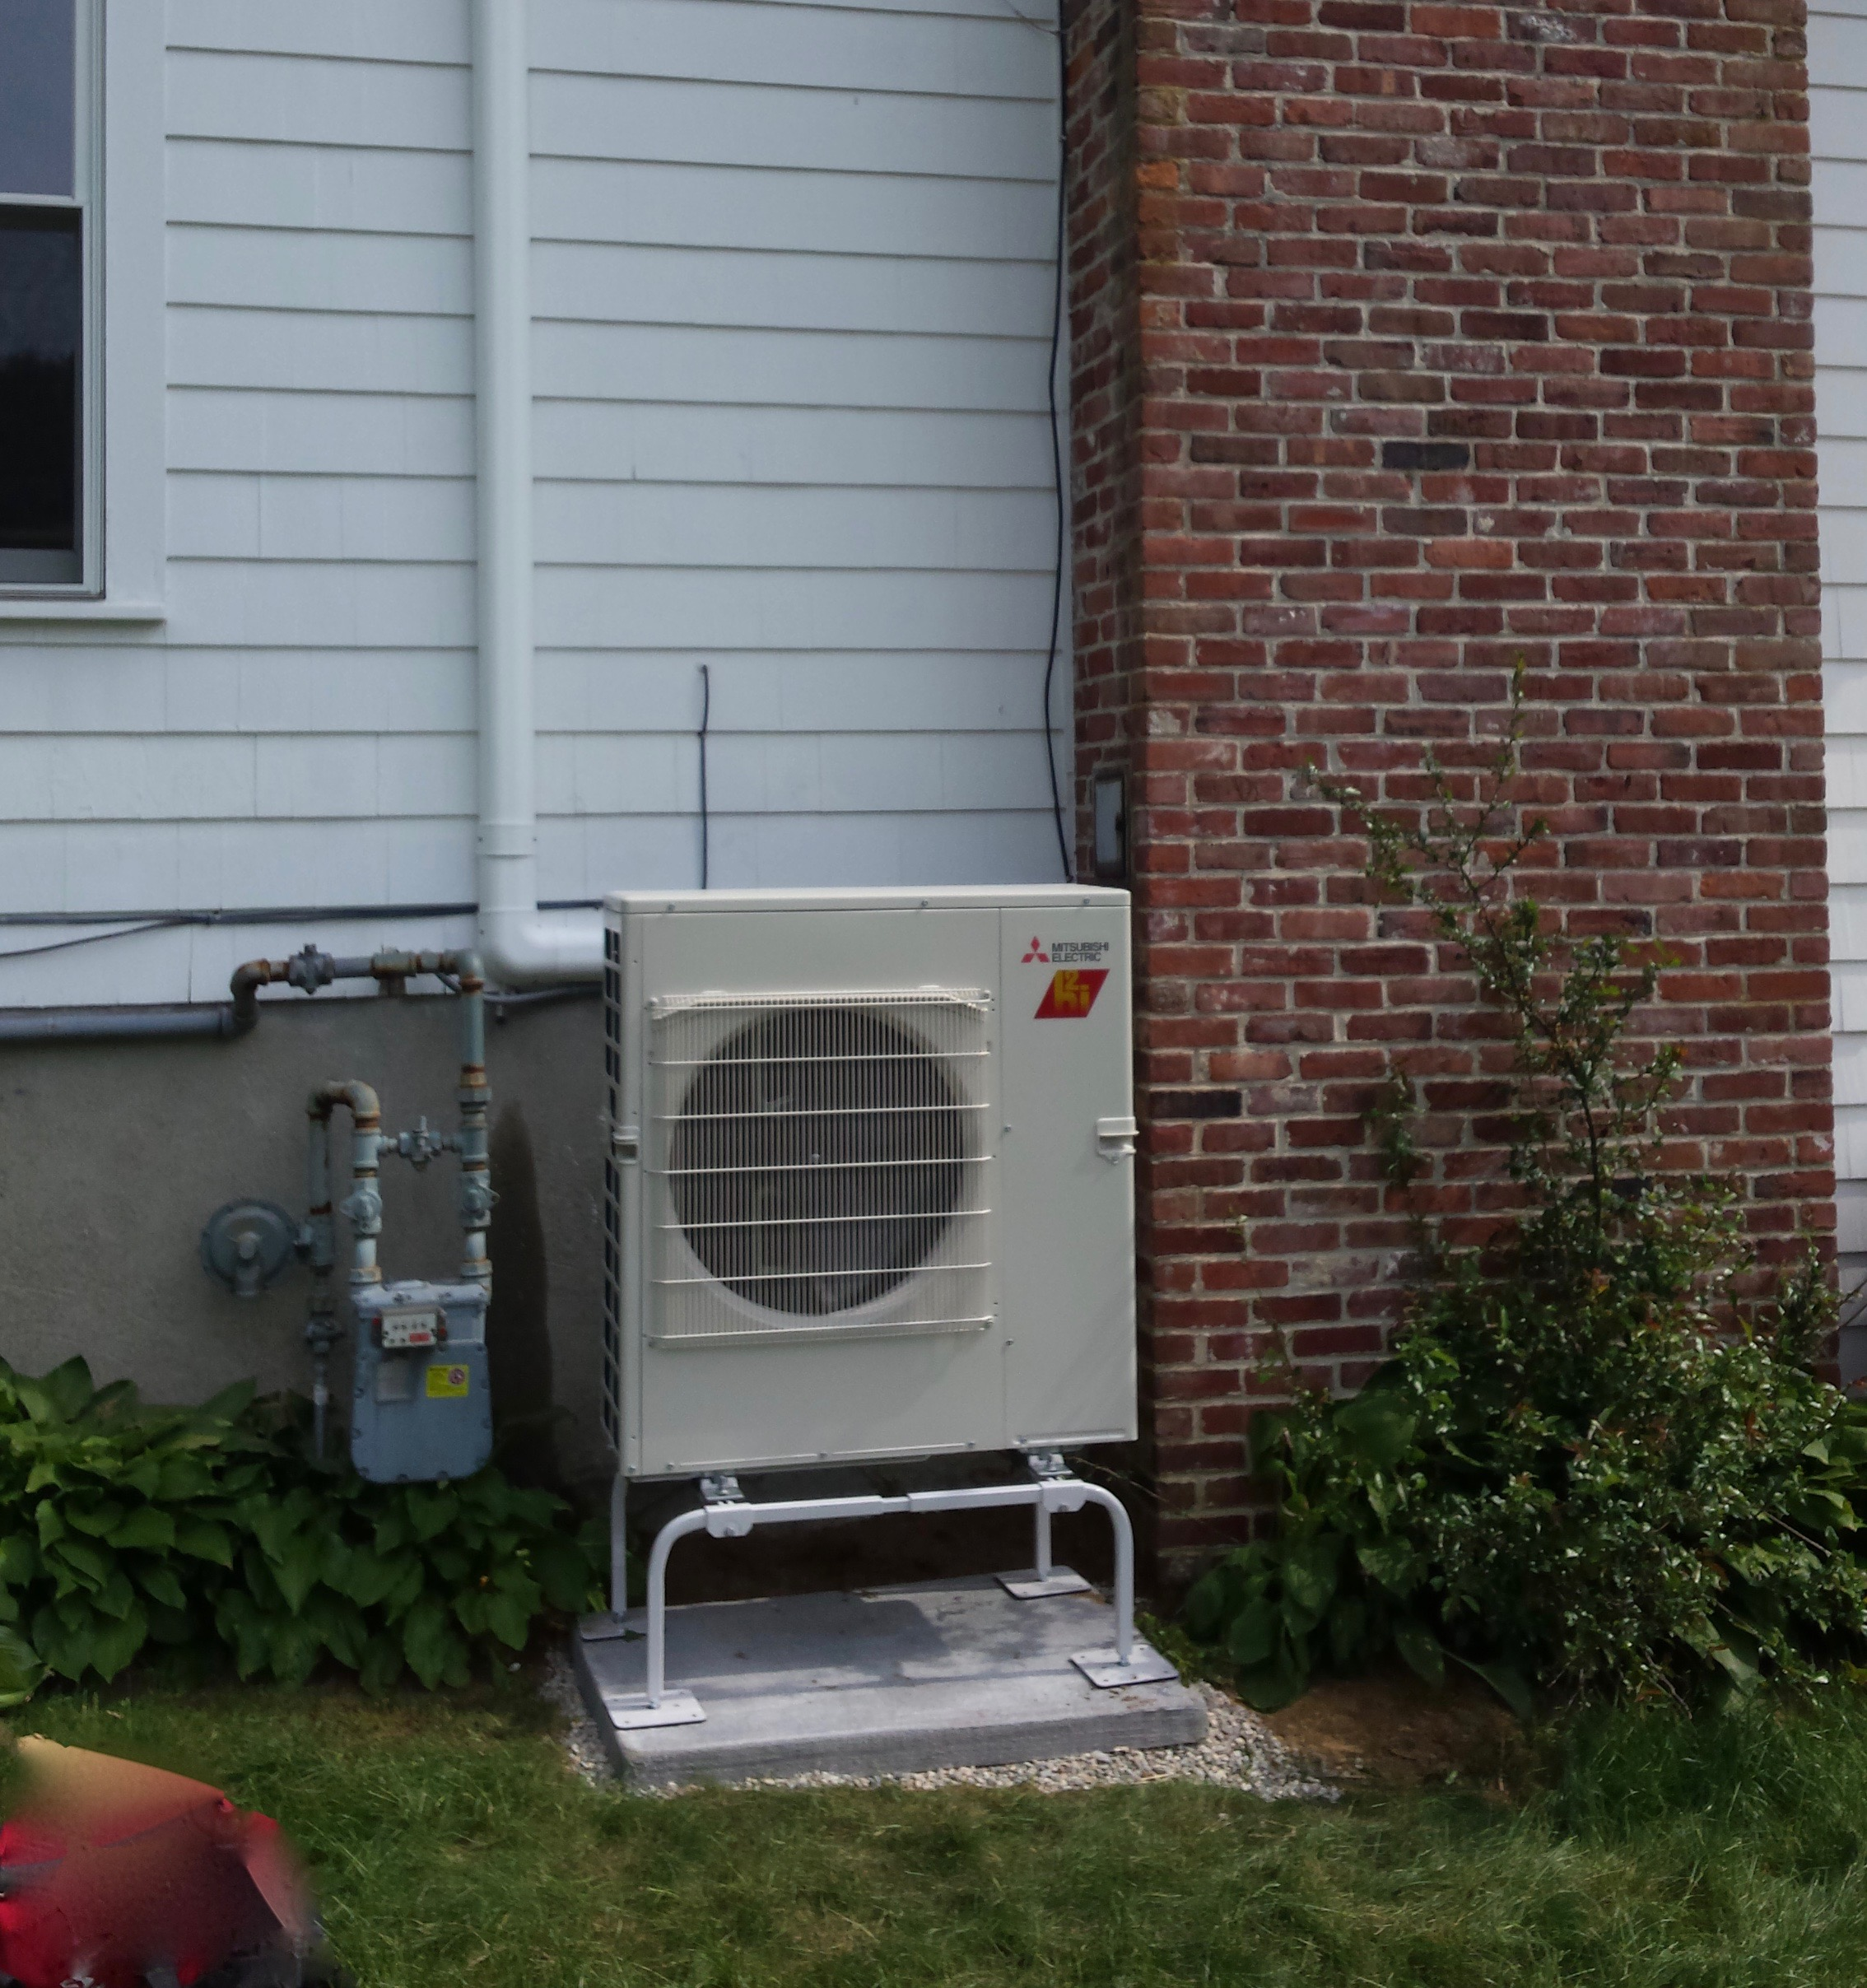 Mitsubishi Hyper Heat ductless heating and cooling system